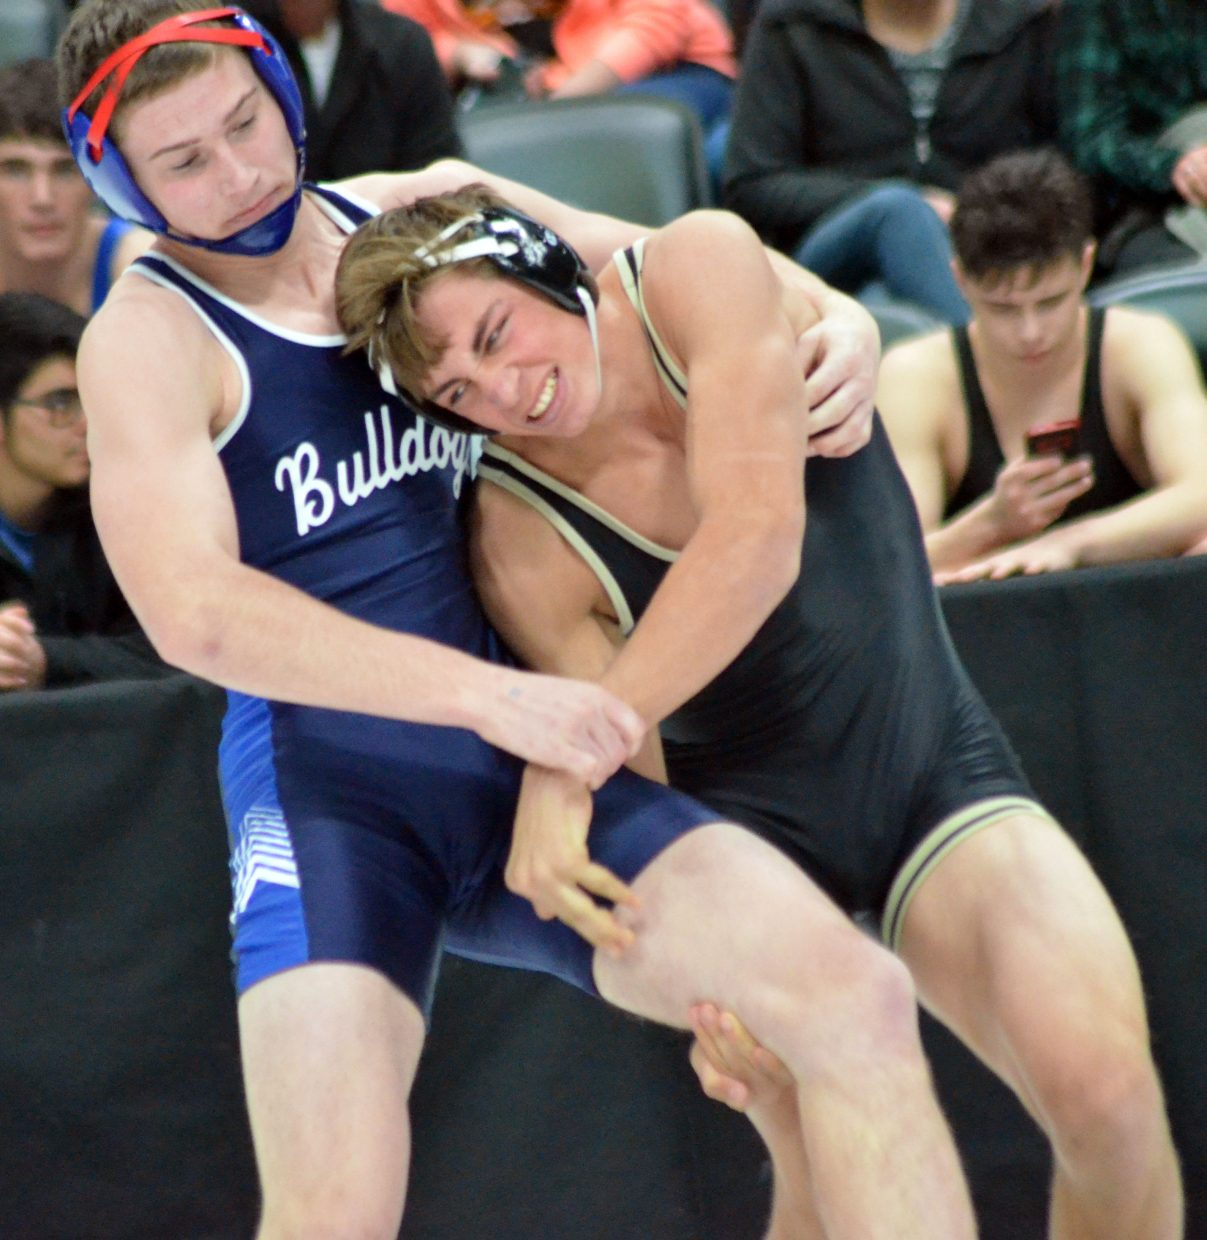 Moffat County High School wrestler Miki Klimper stays cool against Ian Reinhardt of Pagosa Springs. Klimper  won by pin to advance to the state quarterfinals round Friday.